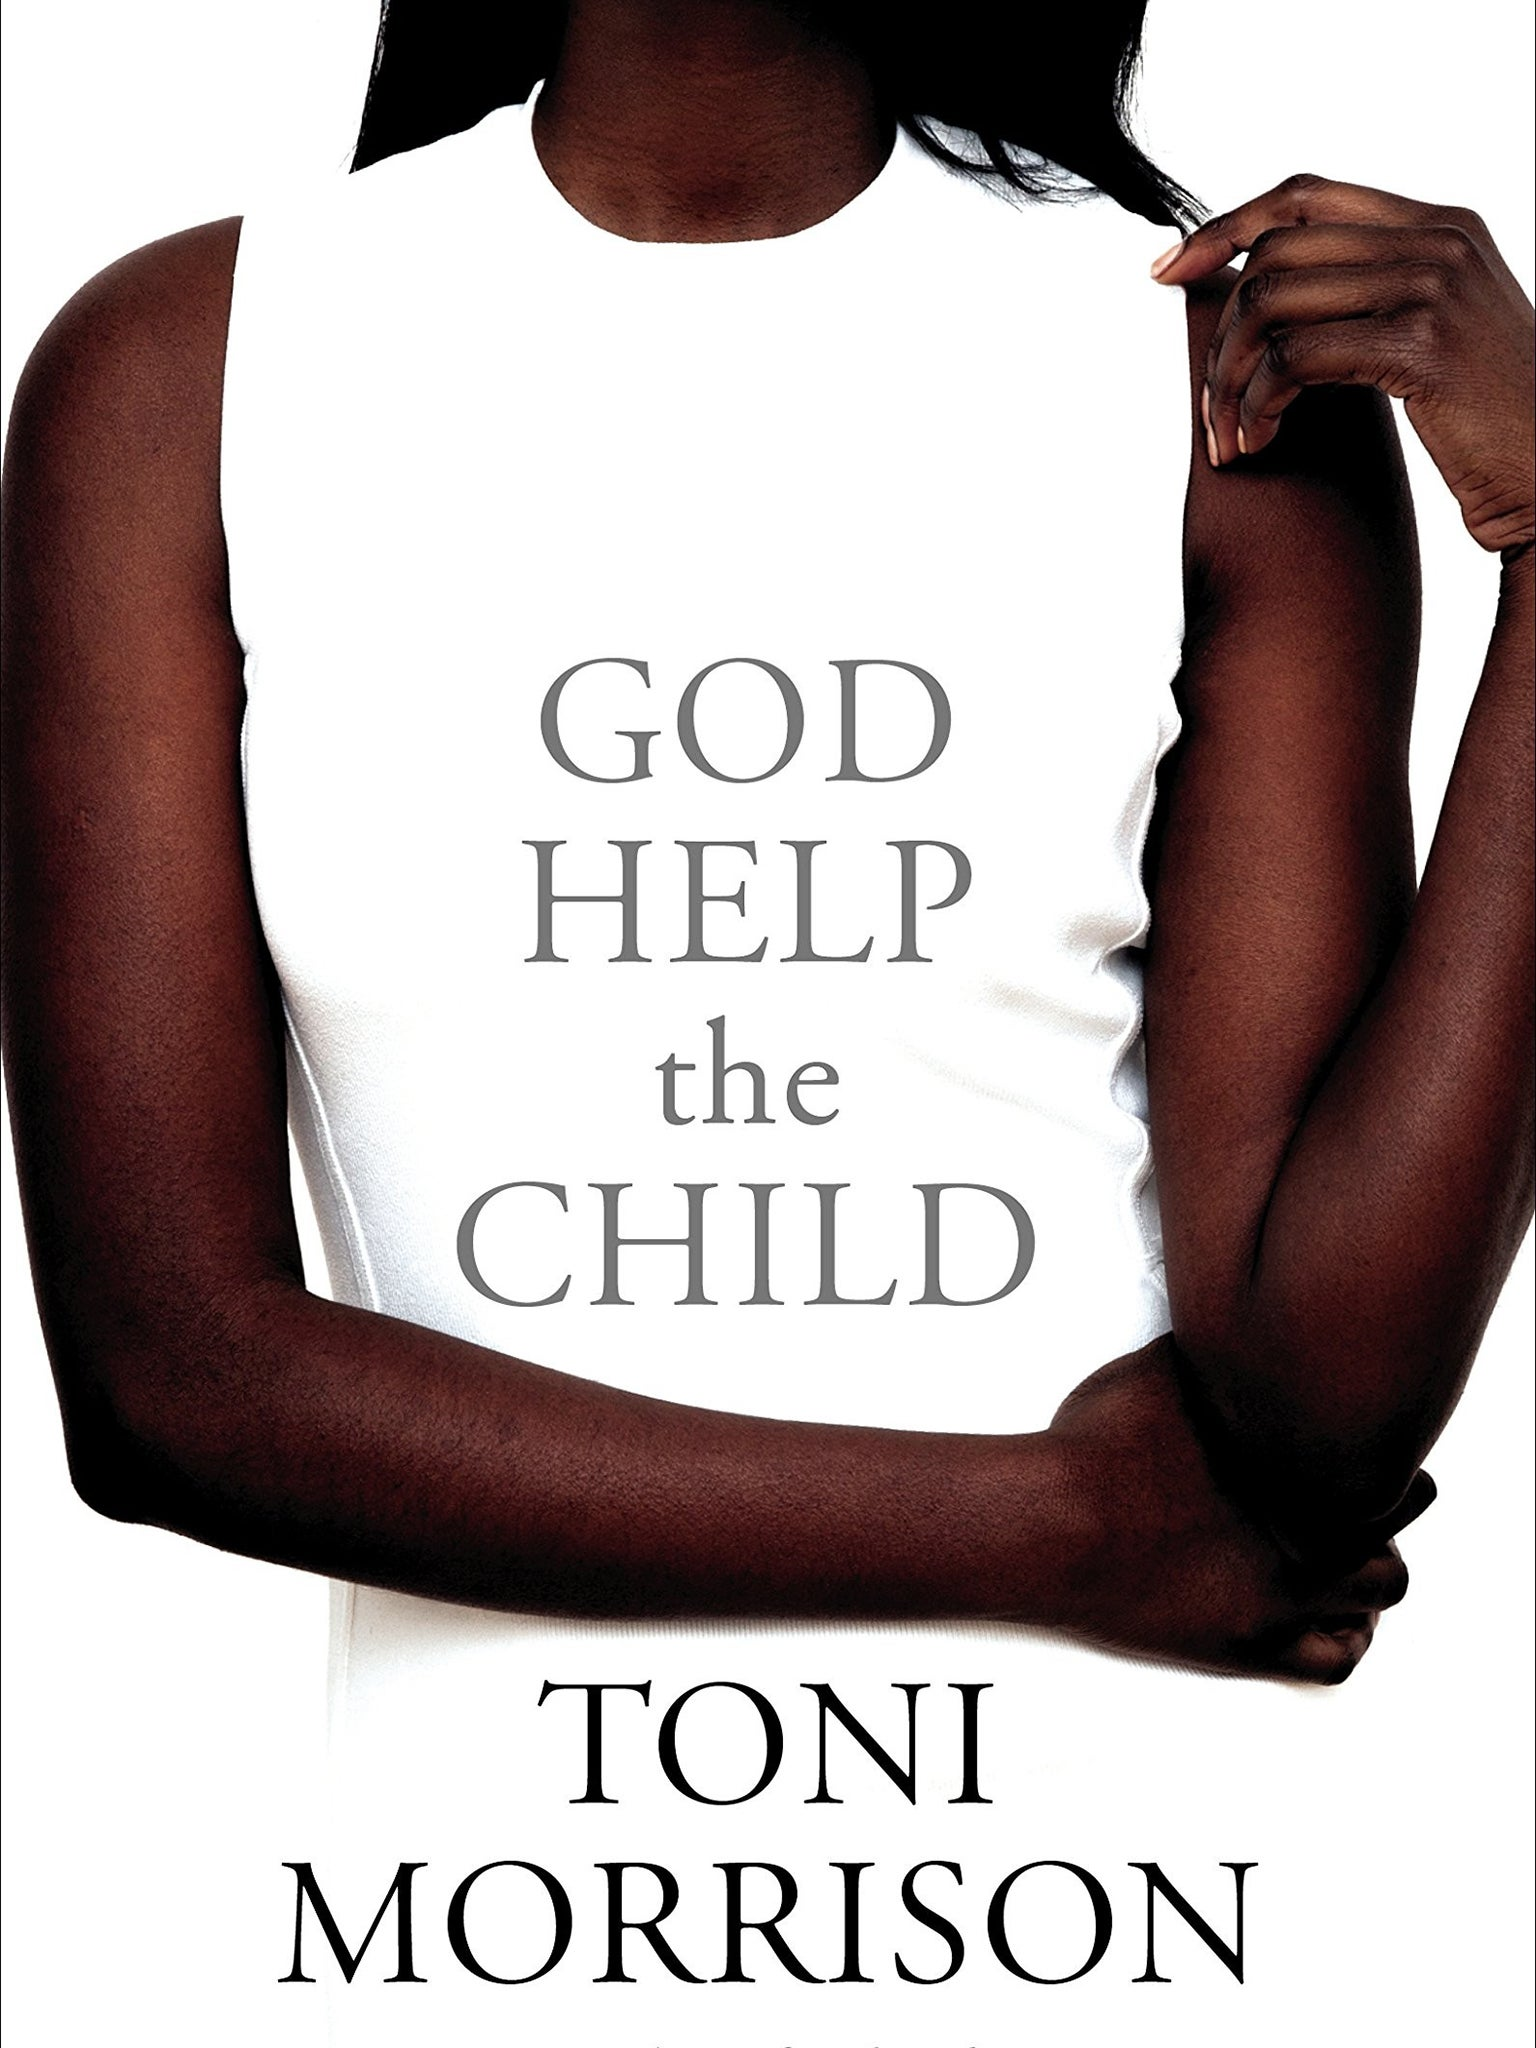 God help the child by toni morrison book review the tyranny of morrison deliberately fandeluxe Choice Image